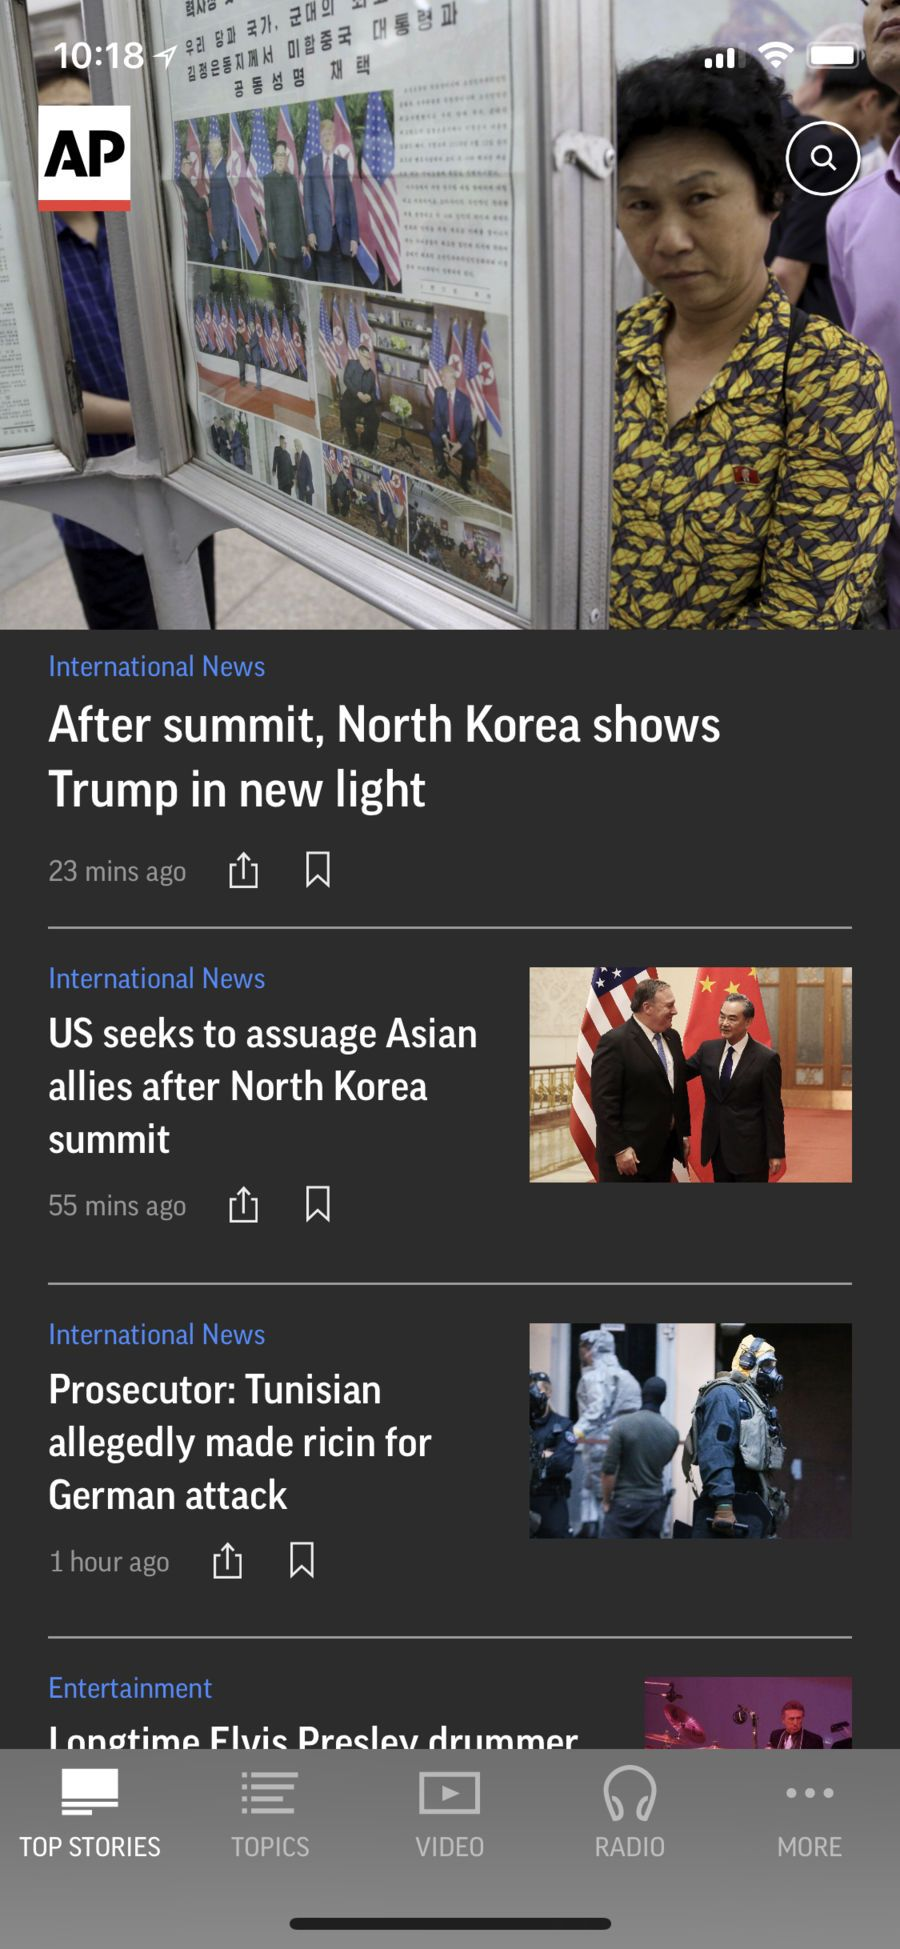 AP News appsappappstoreios App, Iphone games, News